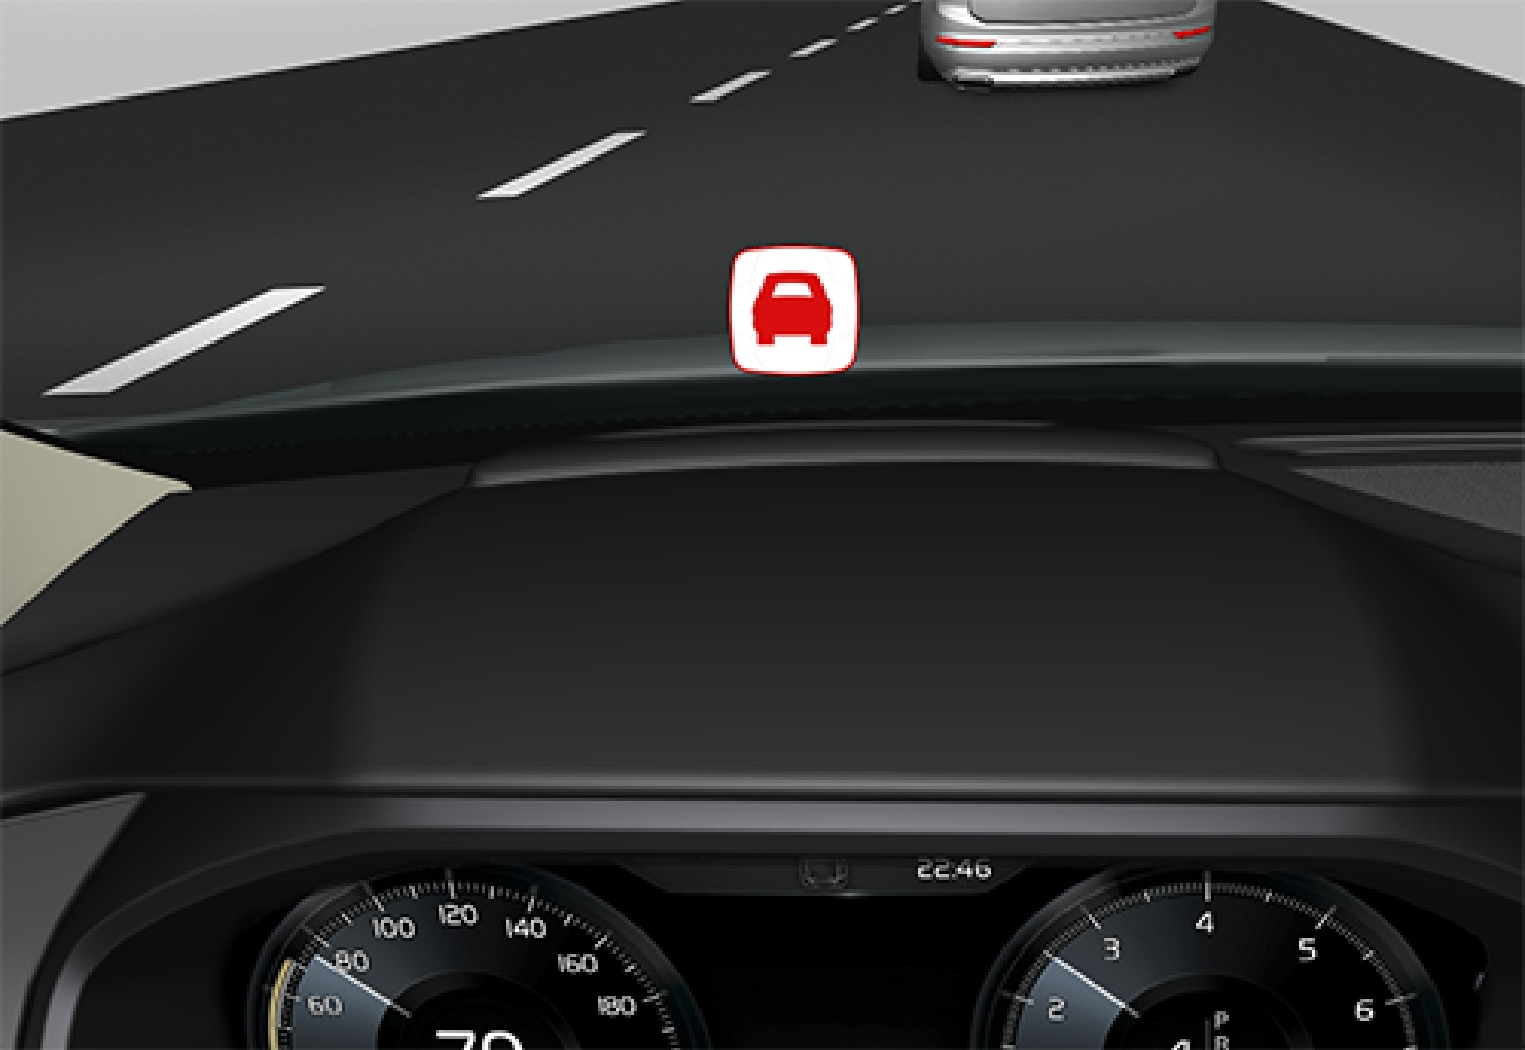 P5-1507 HUD collision warning